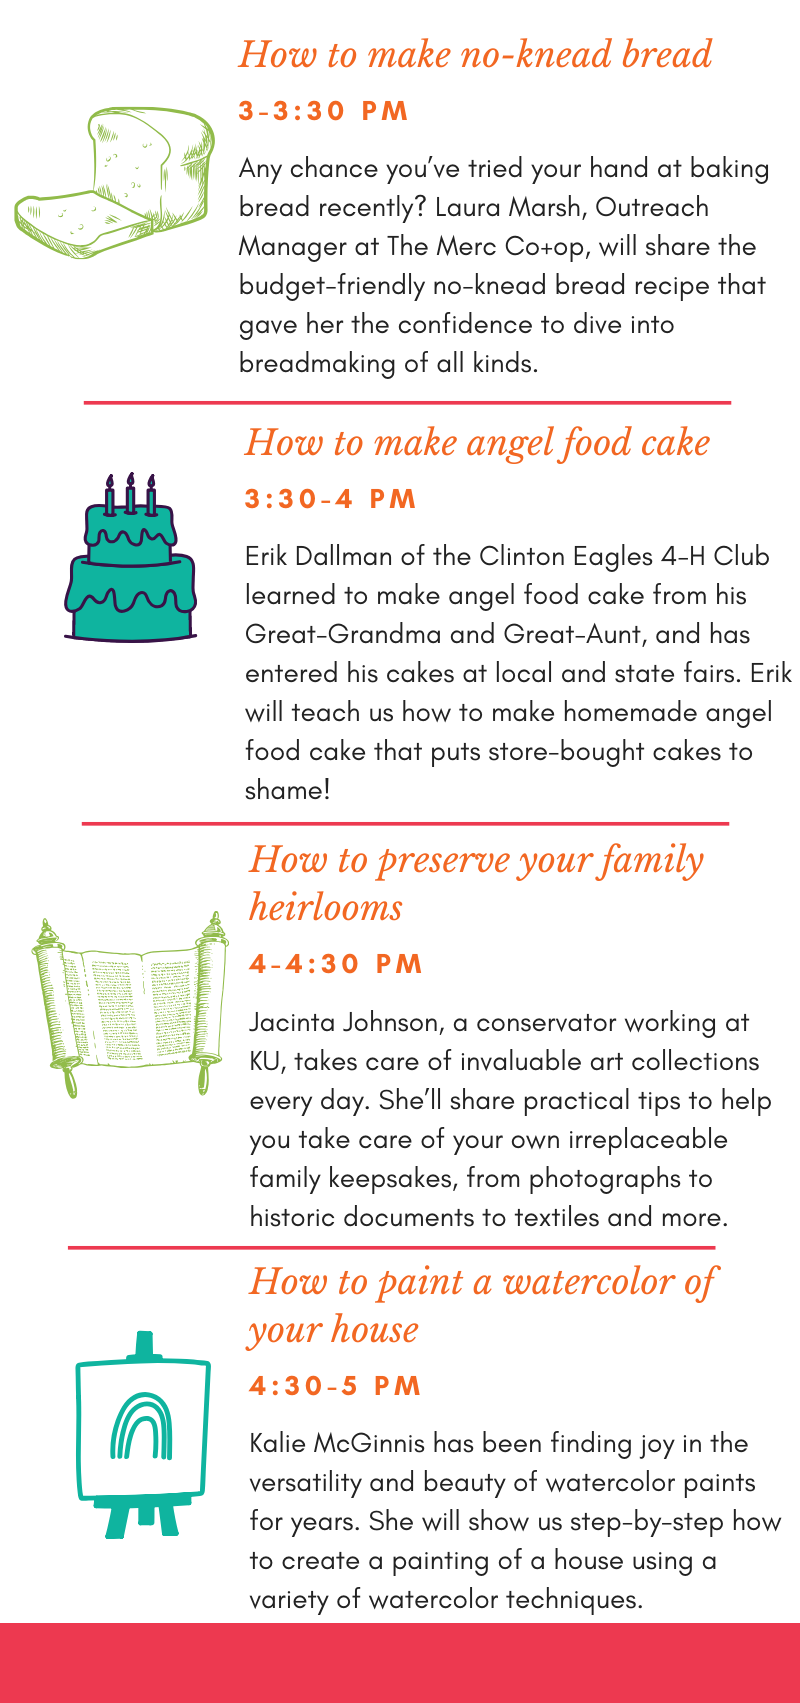 <p>Jun 19 Friday Schedule 1-5 PM  1:00 — Be a better birder  1:30 — Landscape with native plants  2:00 — Face paint like a pro  2:30 — Improve your chess game  3:00 — Make no-knead bread  3:30 — Make an angel food cake  4:00 — Preserve family heirlooms  4:30 — Paint a watercolor of your house</p>